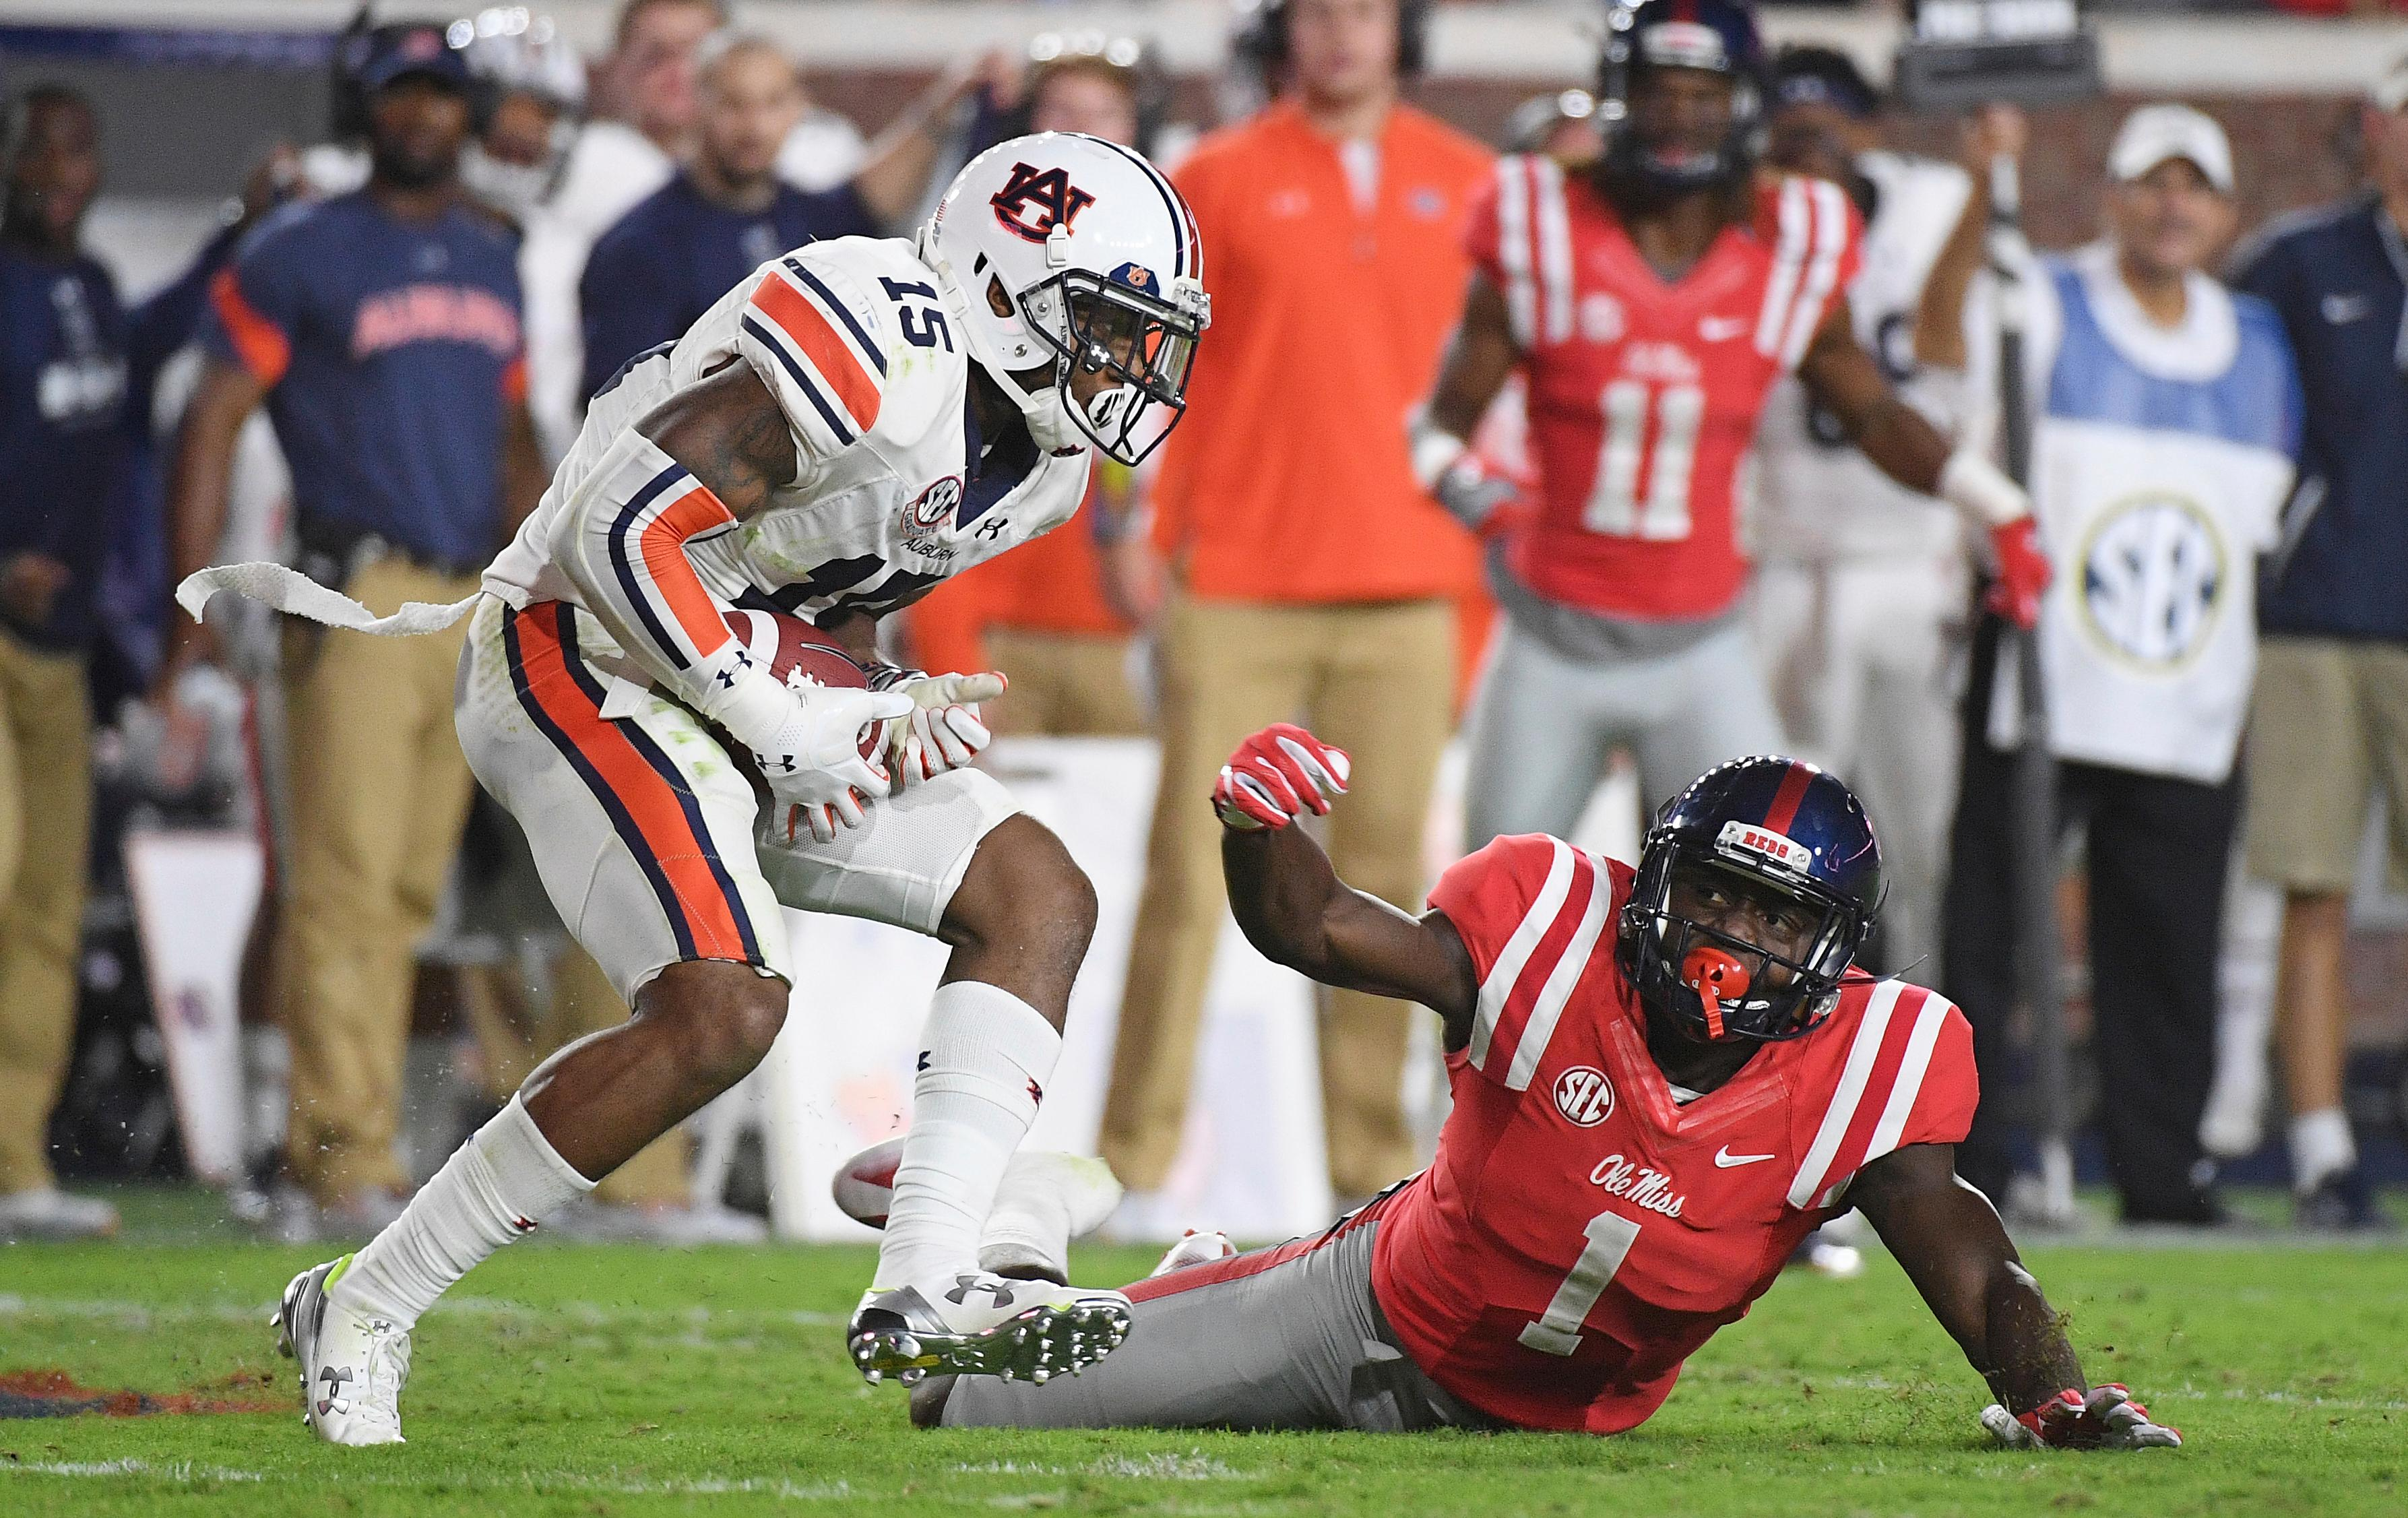 Auburn defensive back Joshua Holsey (15) was also taken in the seventh round by the Redskins. Holsey intercepts a pass intended for Mississippi wide receiver A.J. Brown (1) during the second half of an NCAA college football game in Oxford, Miss., Saturday, Oct. 29, 2016. No. 15 Auburn won 40-29. (AP File Photo/Thomas Graning)